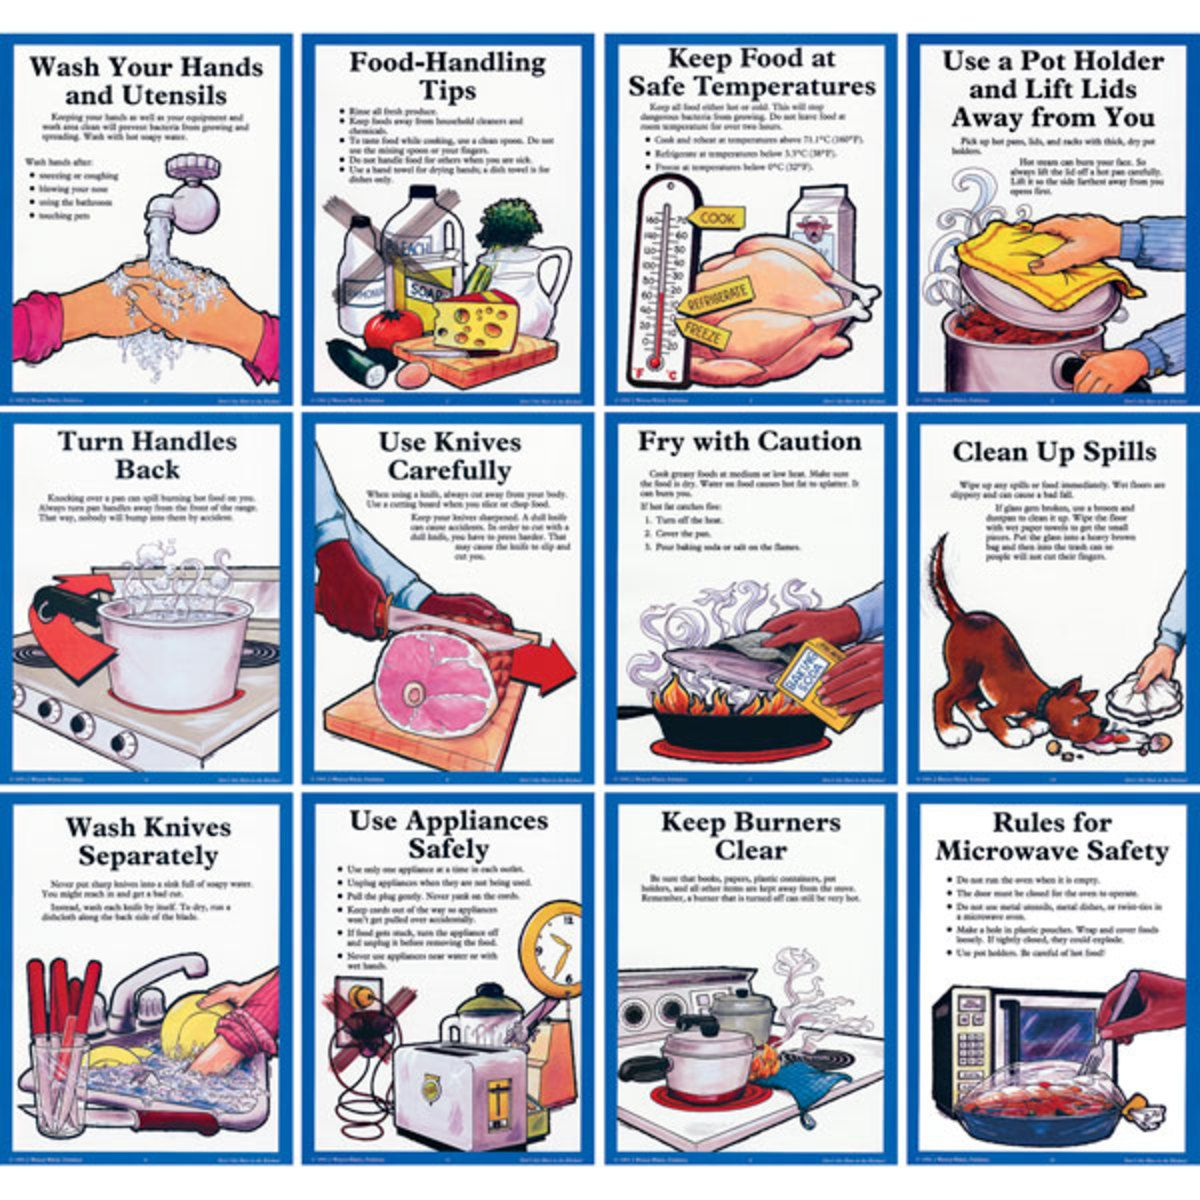 Don T Get Hurt In The Kitchen Posters Wa13926 Nasco Kitchen Safety Food Safety And Sanitation Kitchen Safety Rules